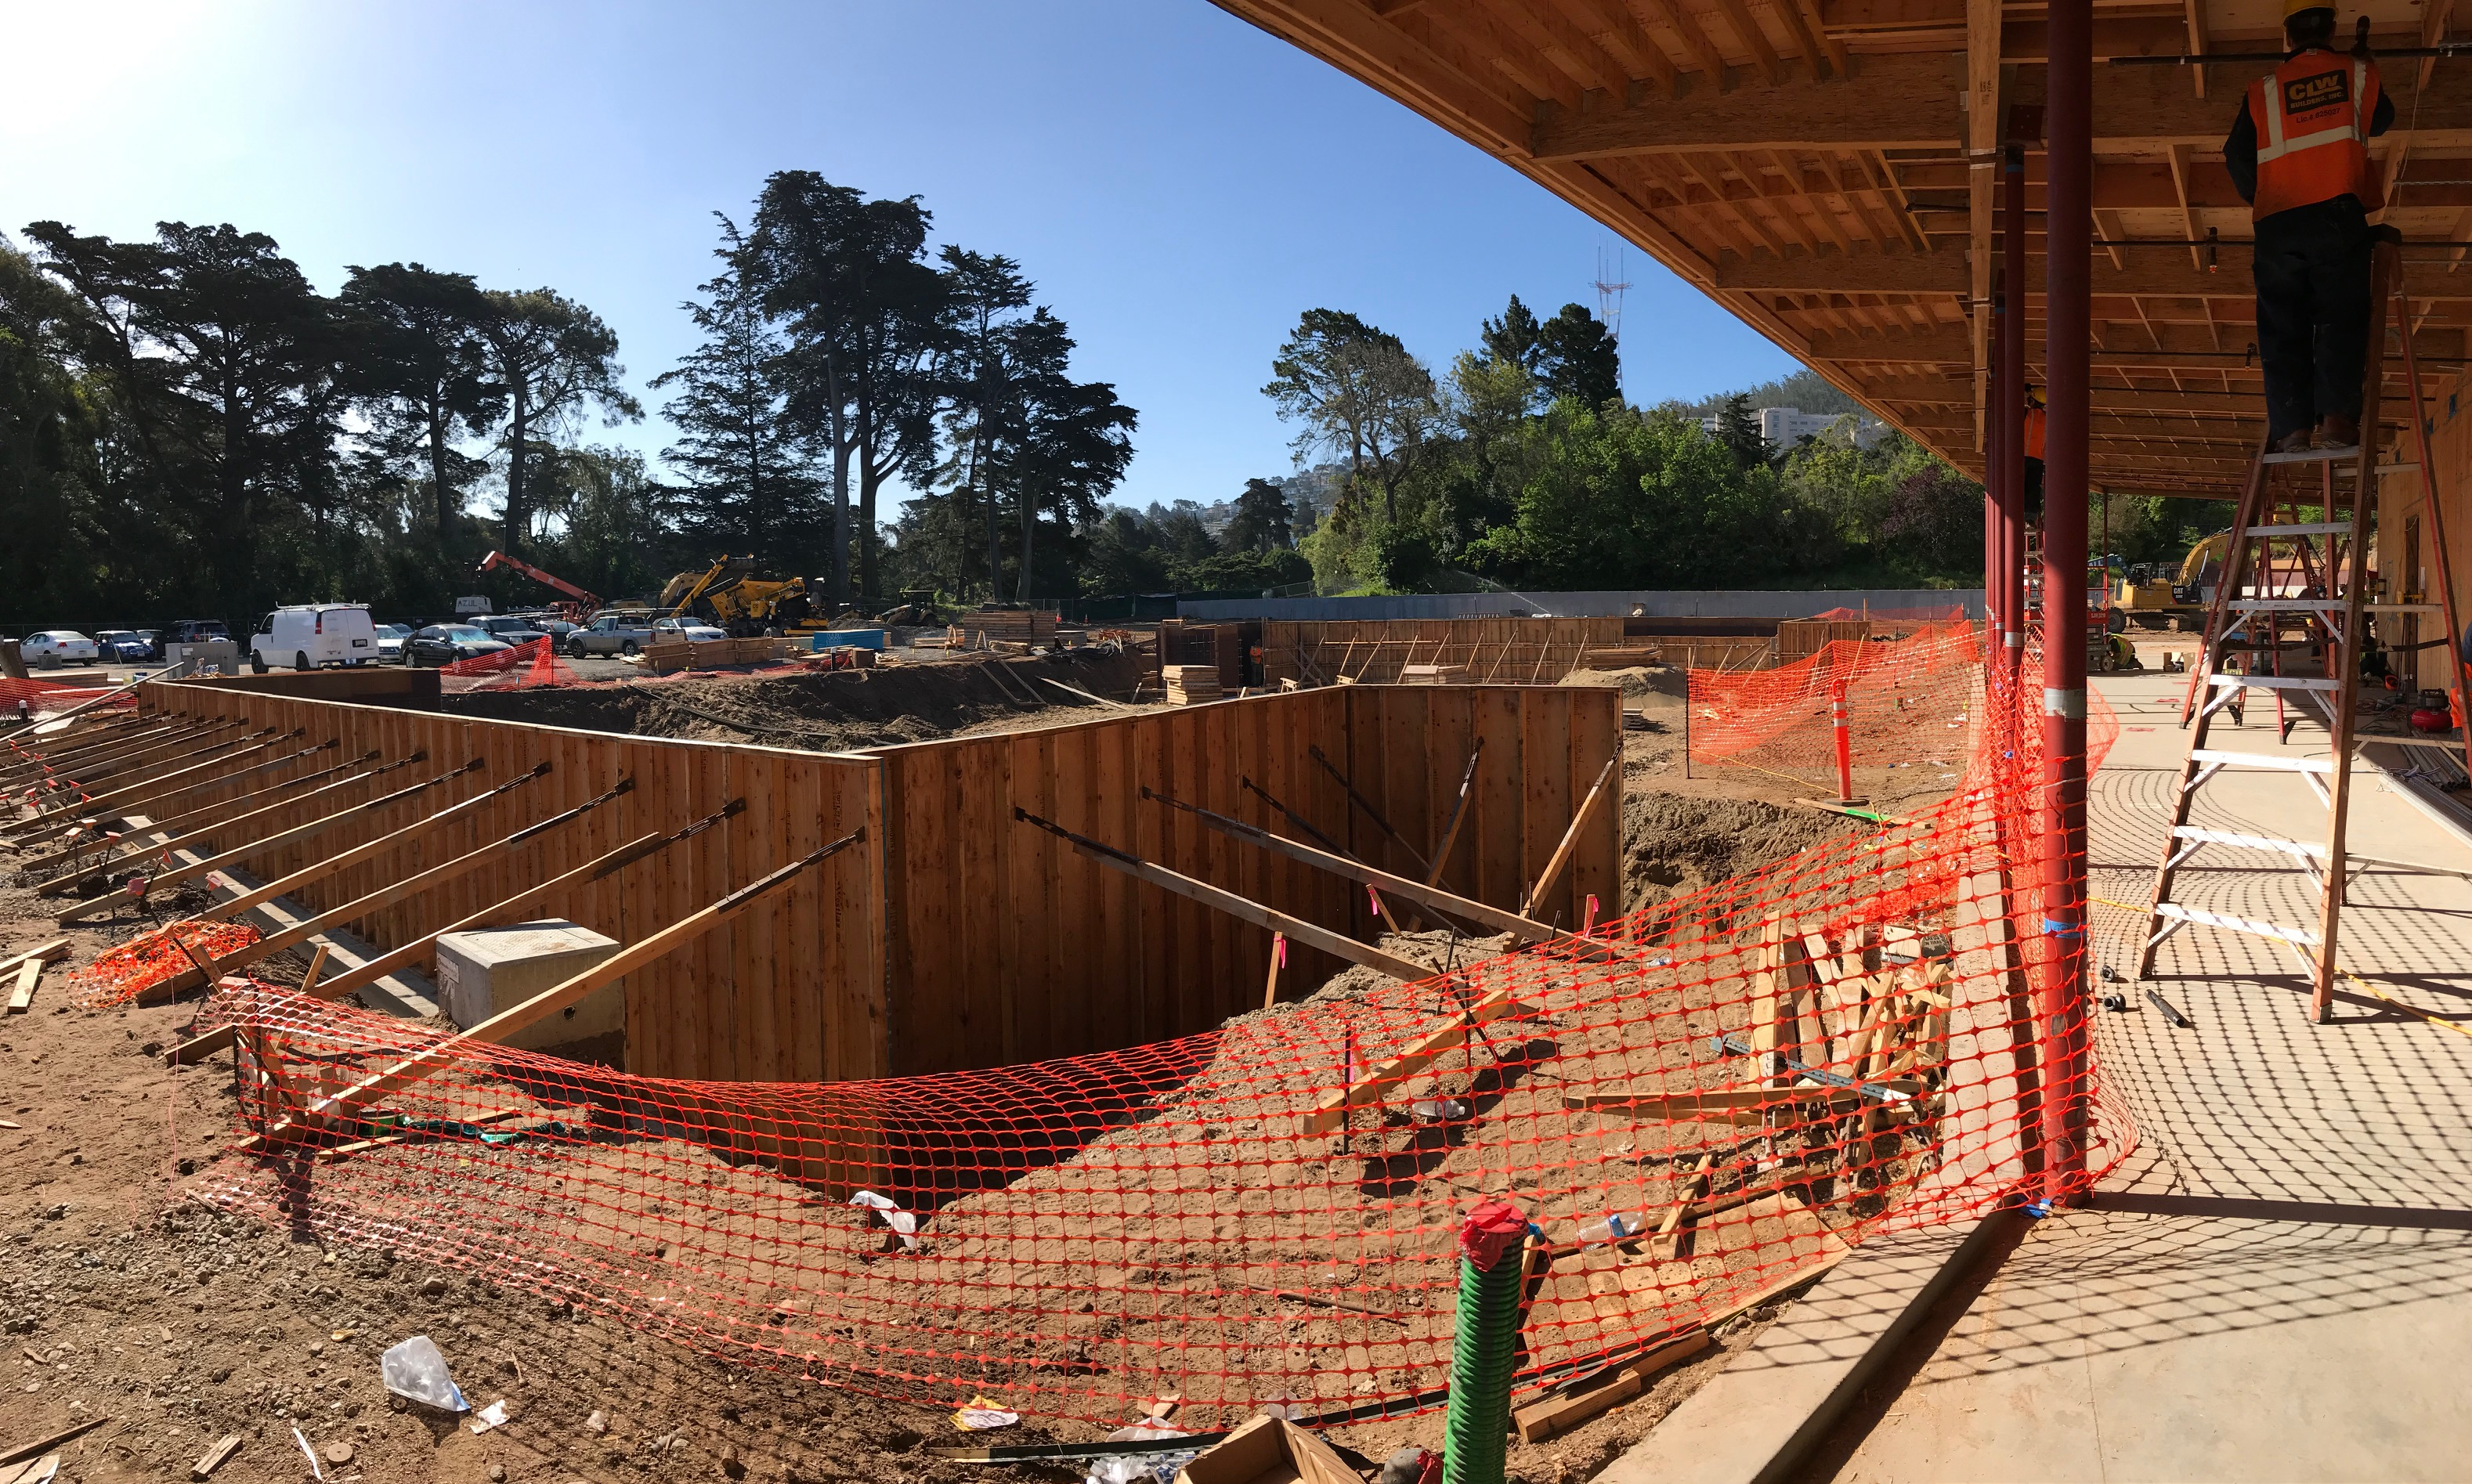 Golden Gate Park Tennis Center Construction June 2020 2